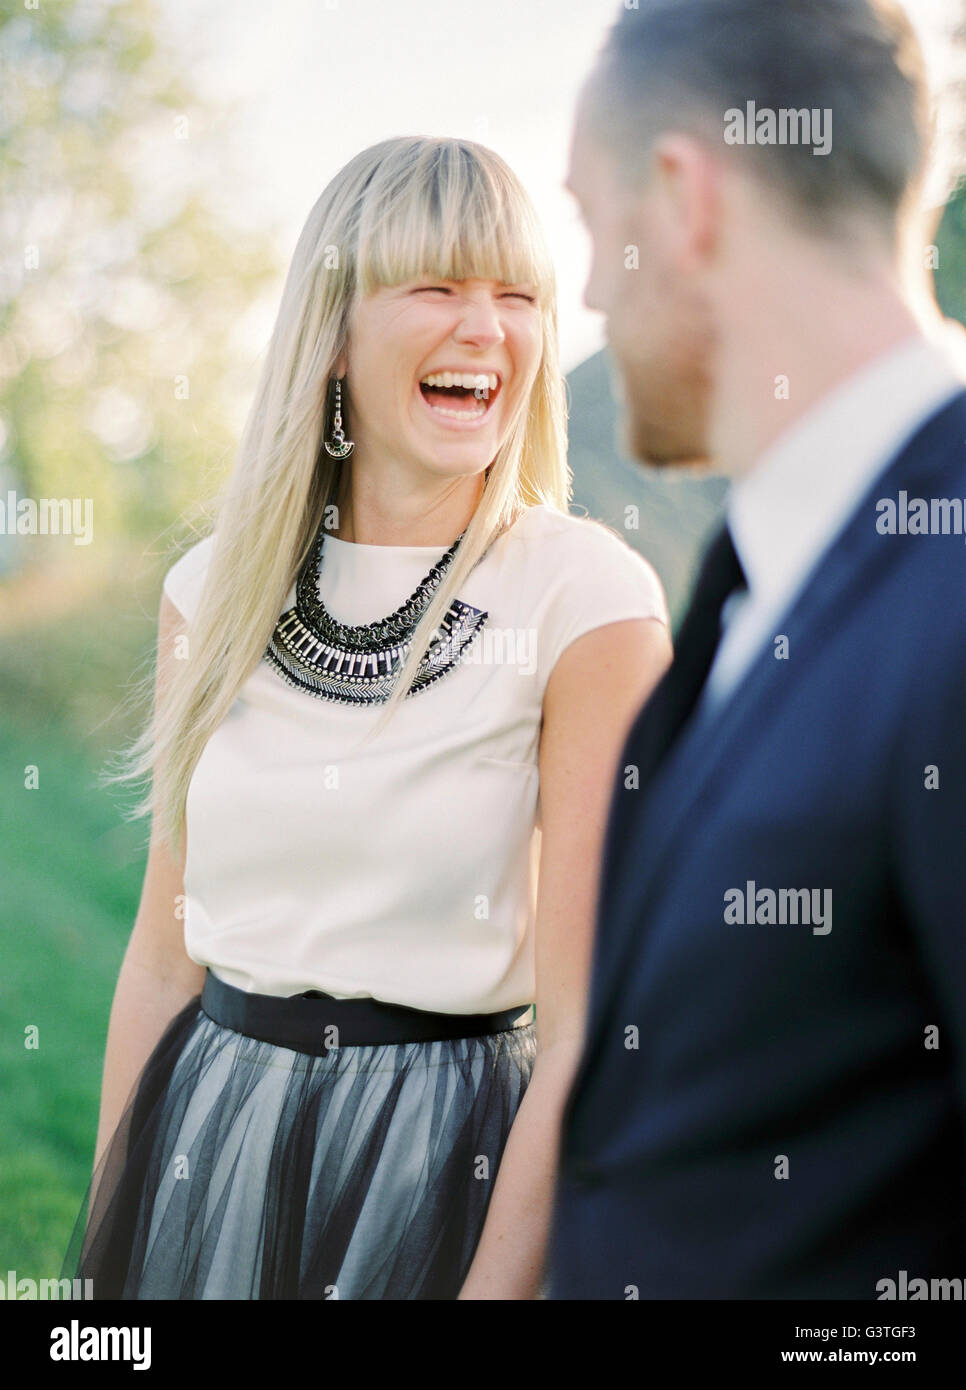 Sweden, Portrait of laughing bride and groom - Stock Image